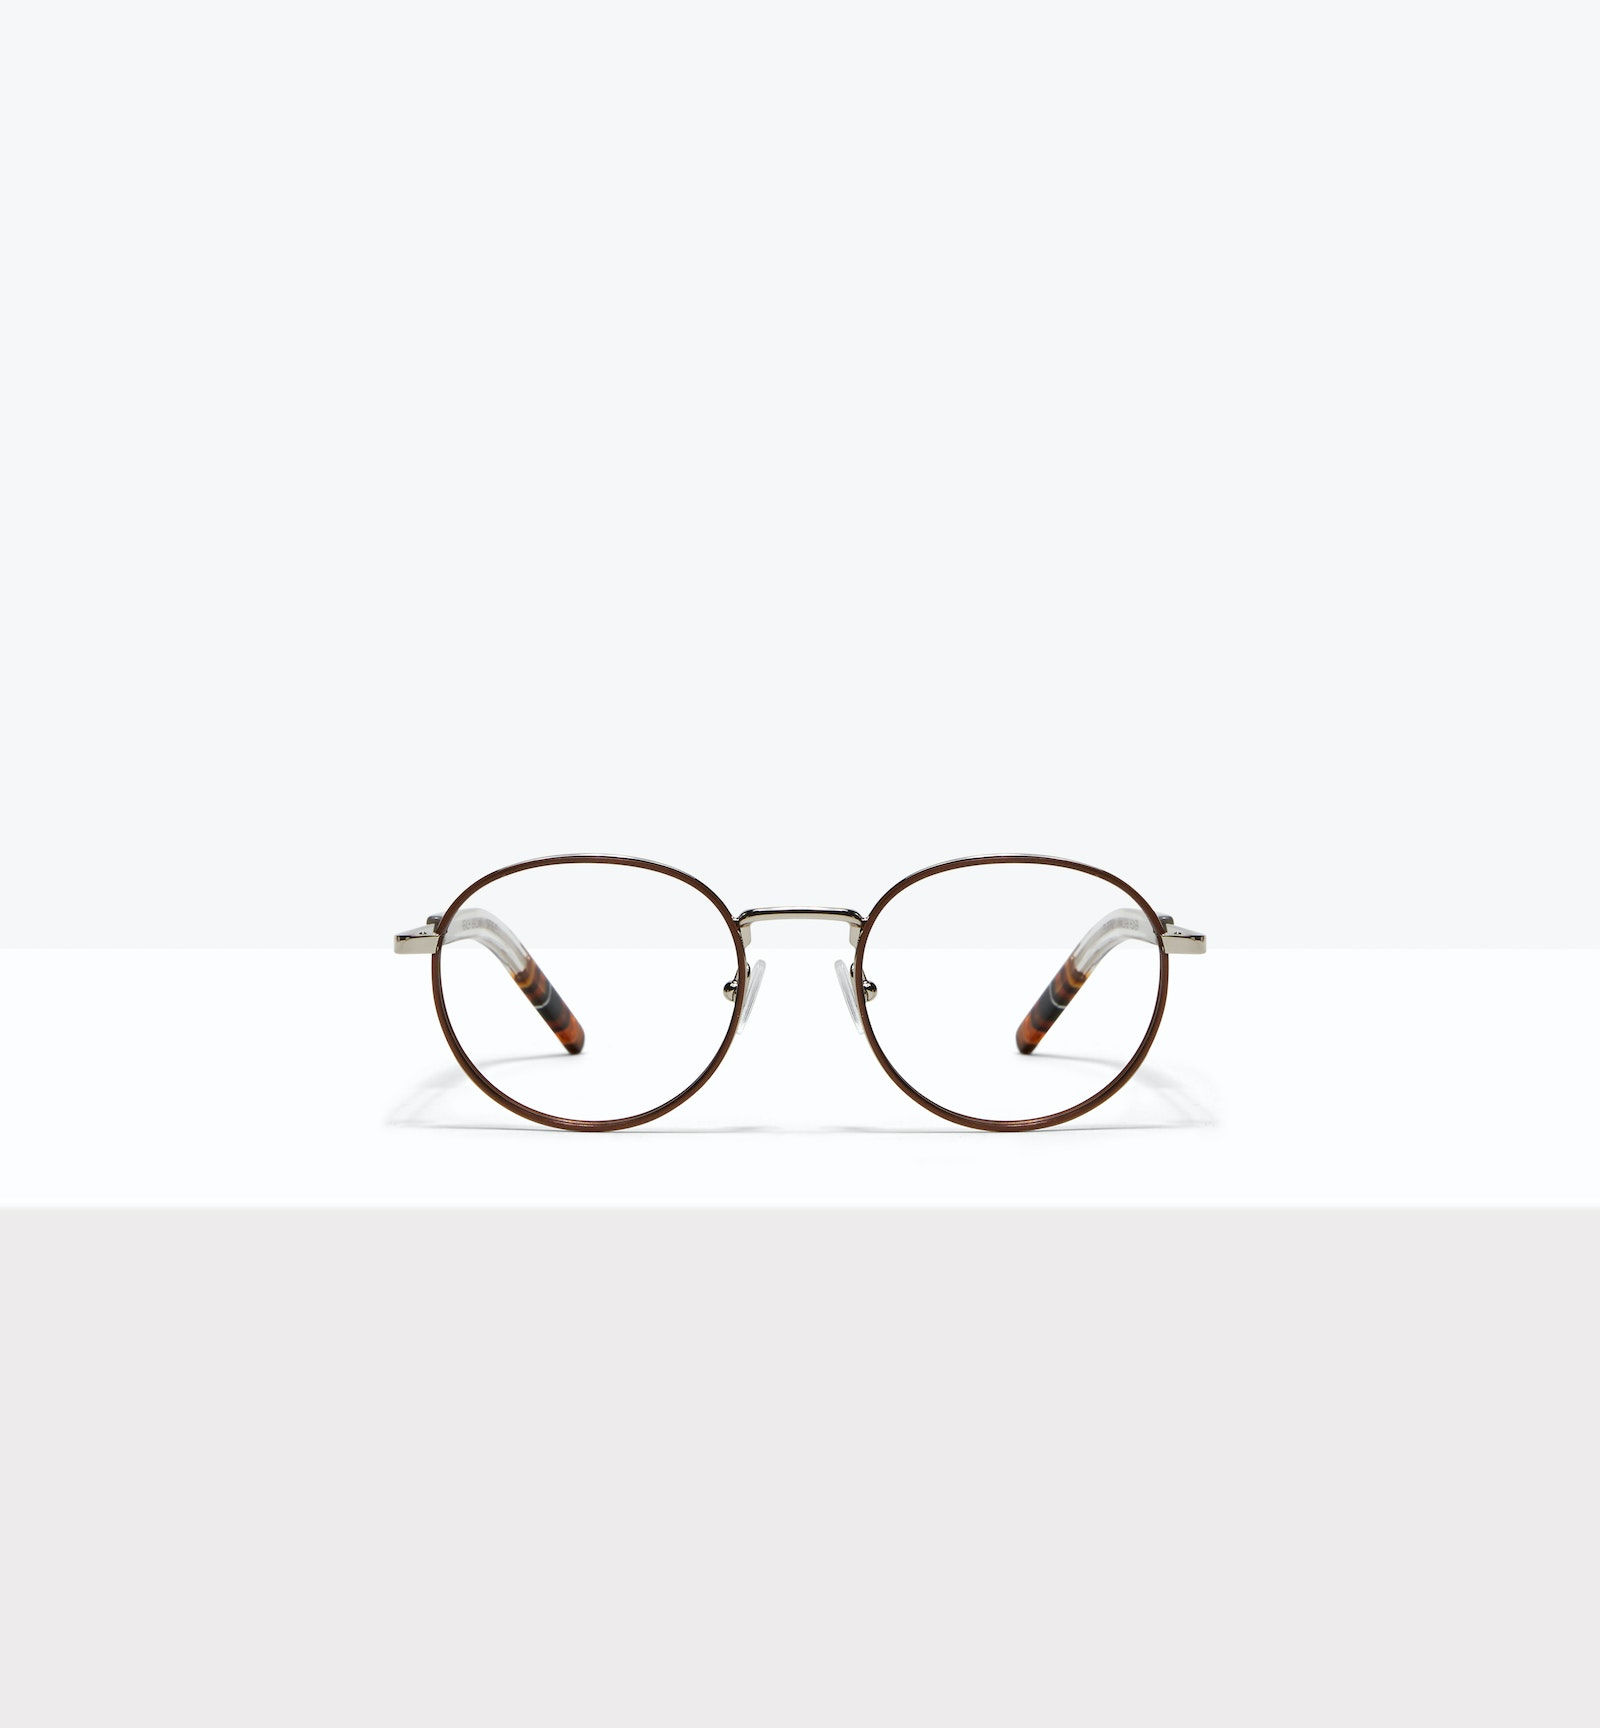 Affordable Fashion Glasses Round Eyeglasses Men Reach Brown Steel